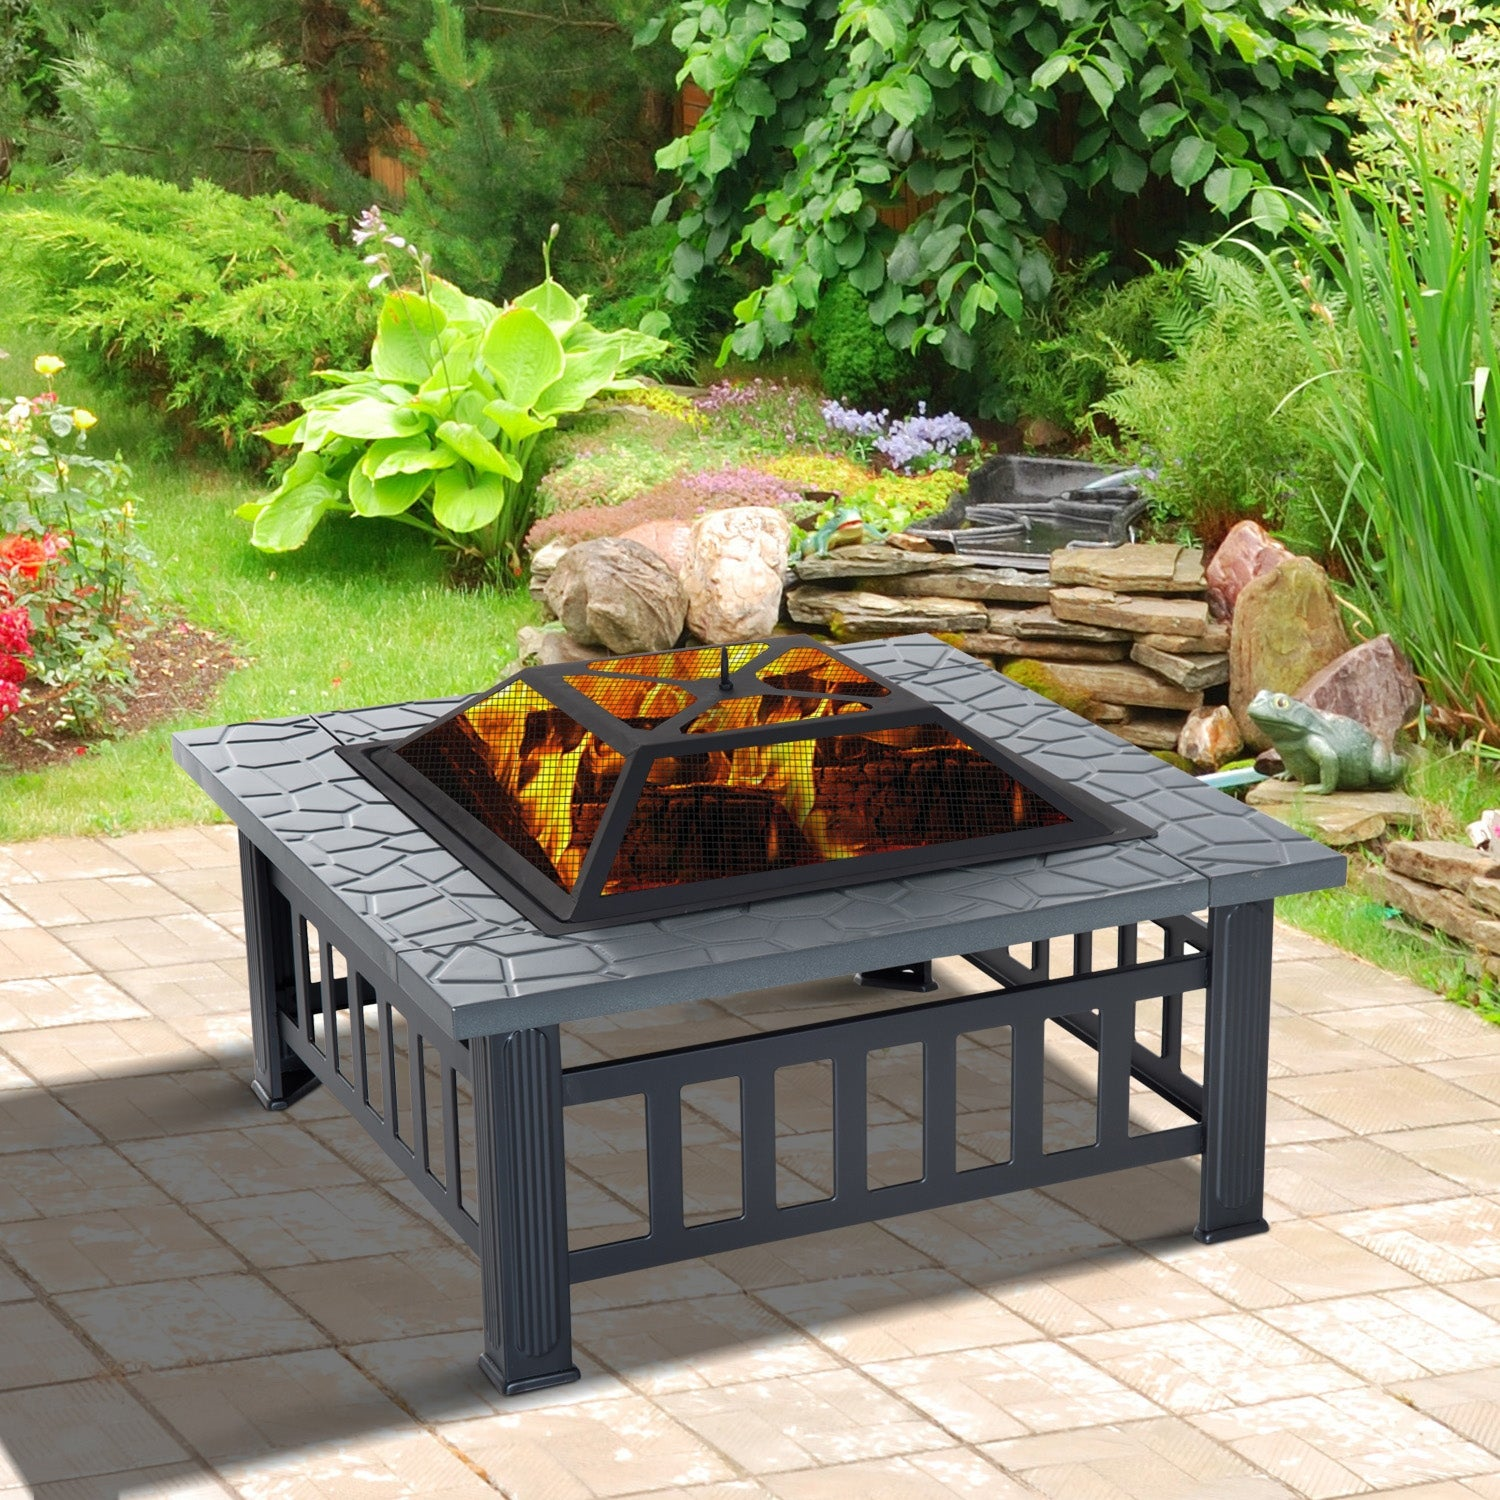 Outsunny 32 Steel Square Outdoor Patio Wood Burning Fire Pit Table Top Set Overstock 17990782